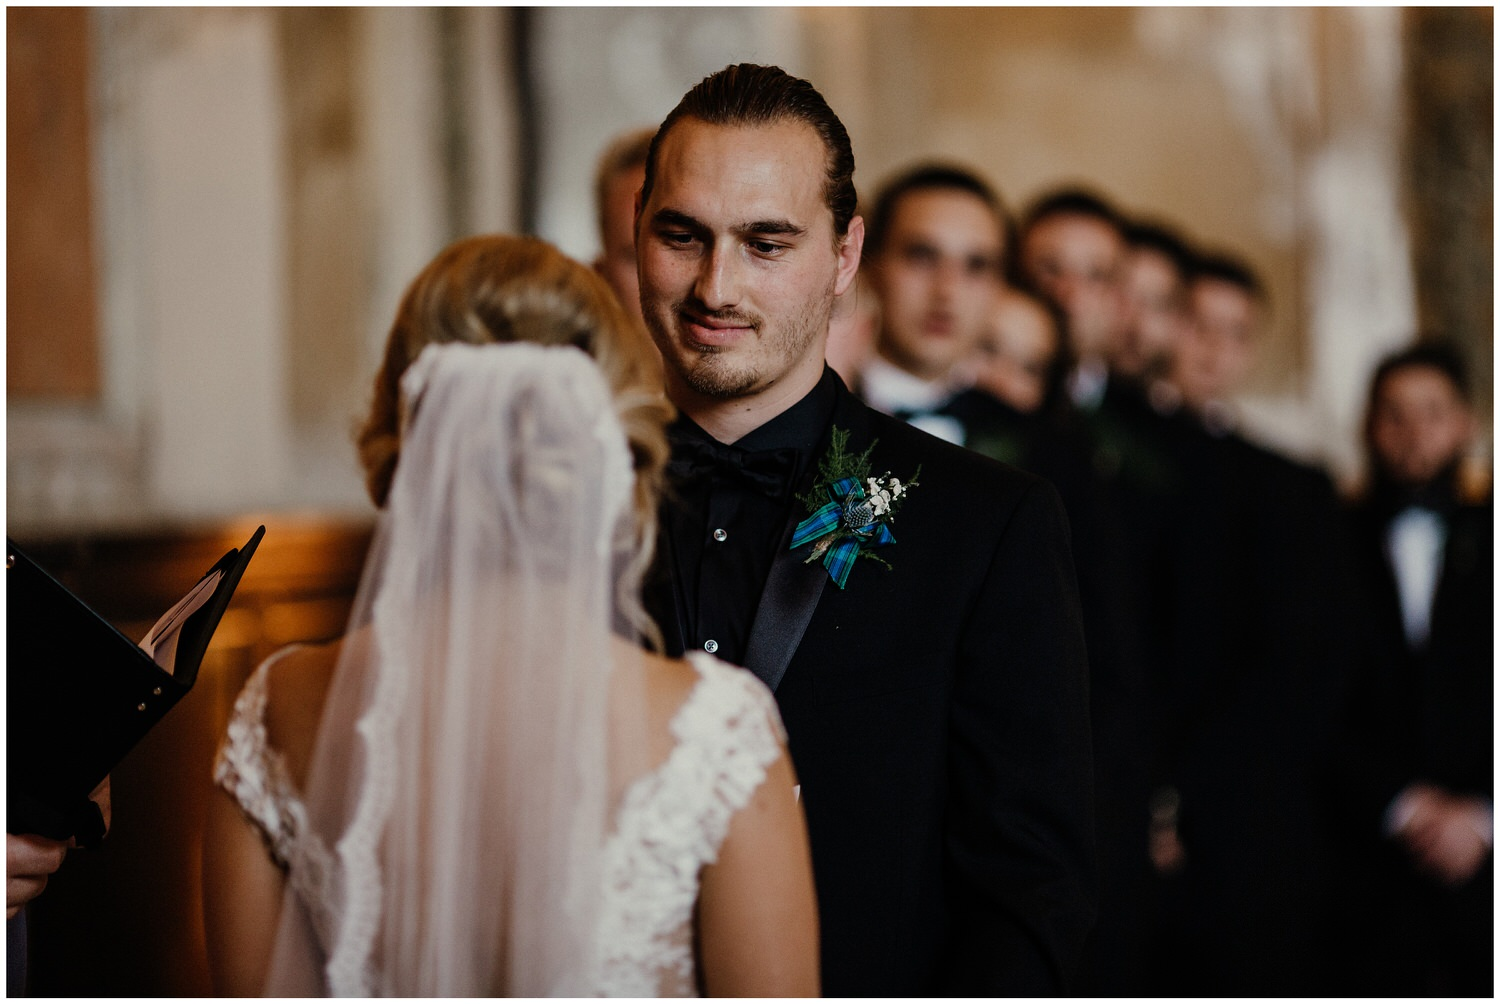 groom looking at bride during ceremony